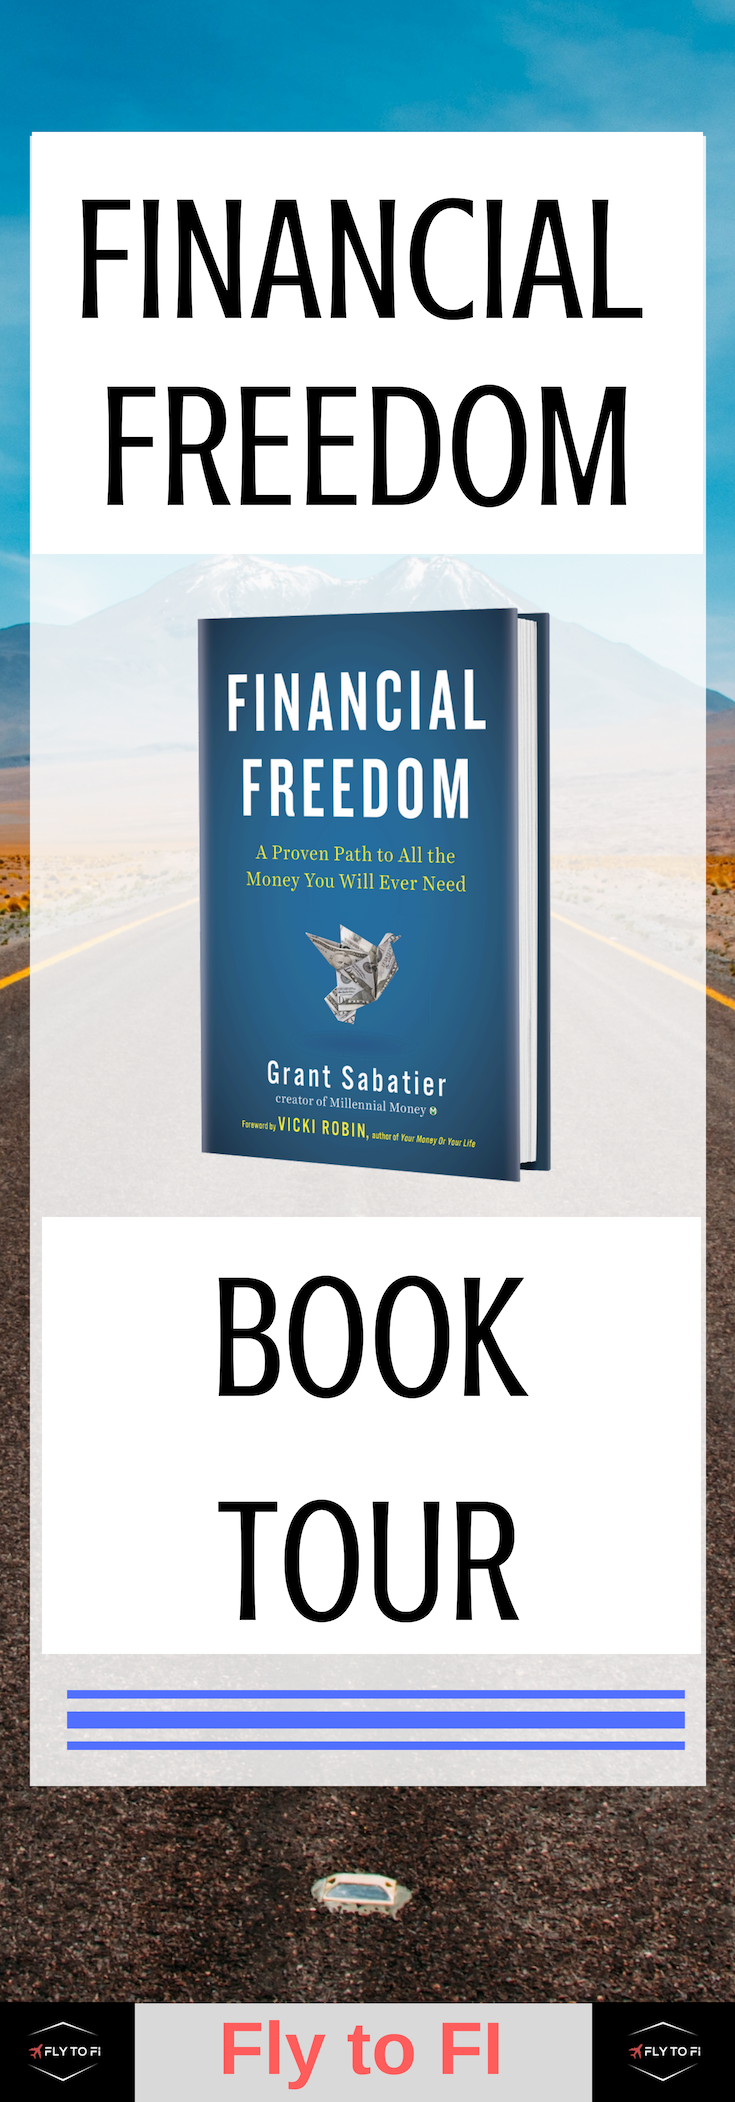 Financial Freedom Book Tour The Next Chapter In My Life Fly To Fi Financial Freedom Financial Freedom Quotes Book Tours